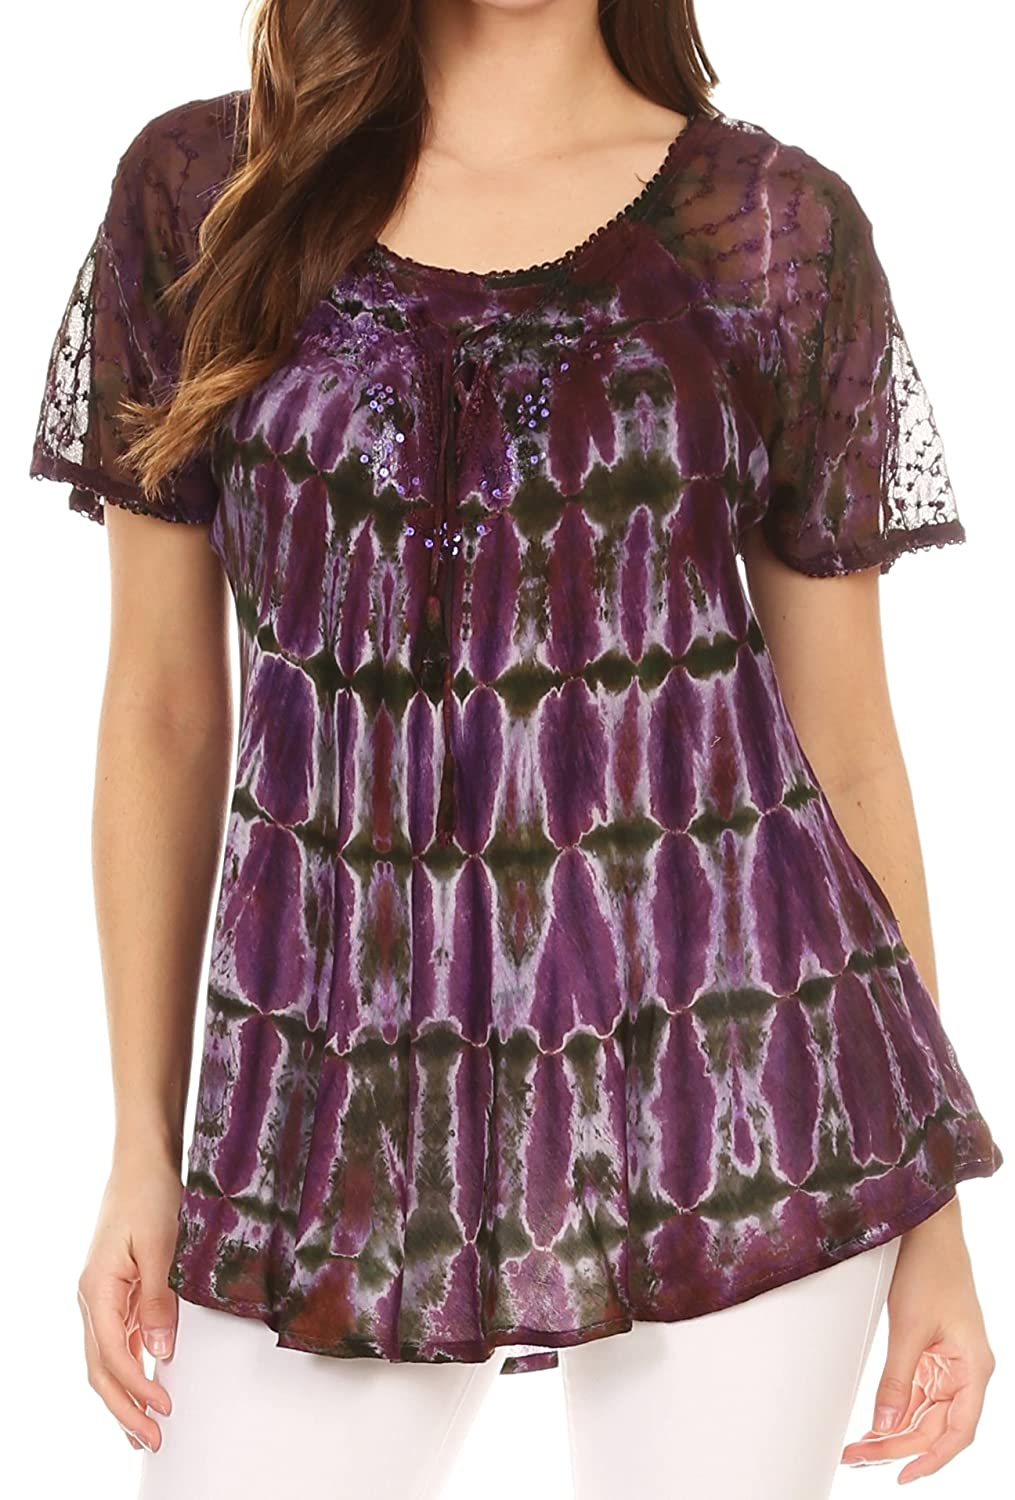 58a9a35652b OS: [(Fits Approximate Top Size US 0-2X, UK 6-24, EU 34-52) Max bust size:  48 inches (122cm), Length: 25.5 inches (65cm)]. OSP: [(Fits Approximate Top  Size ...